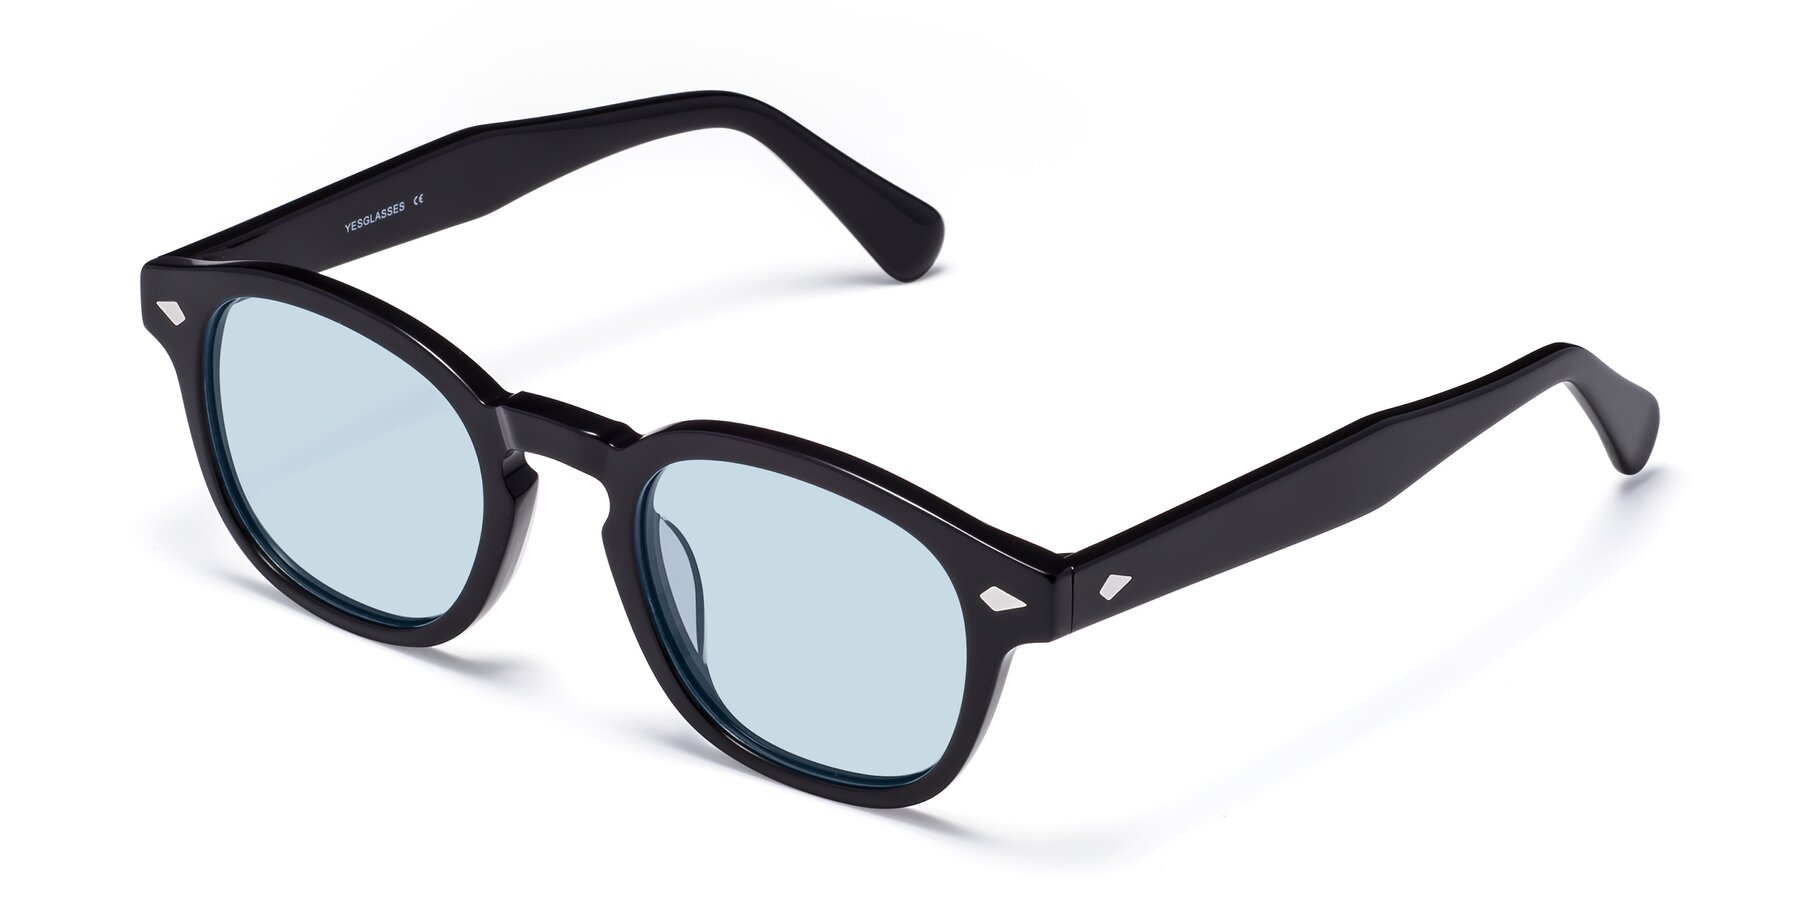 Angle of WALL-E in Black with Light Blue Tinted Lenses